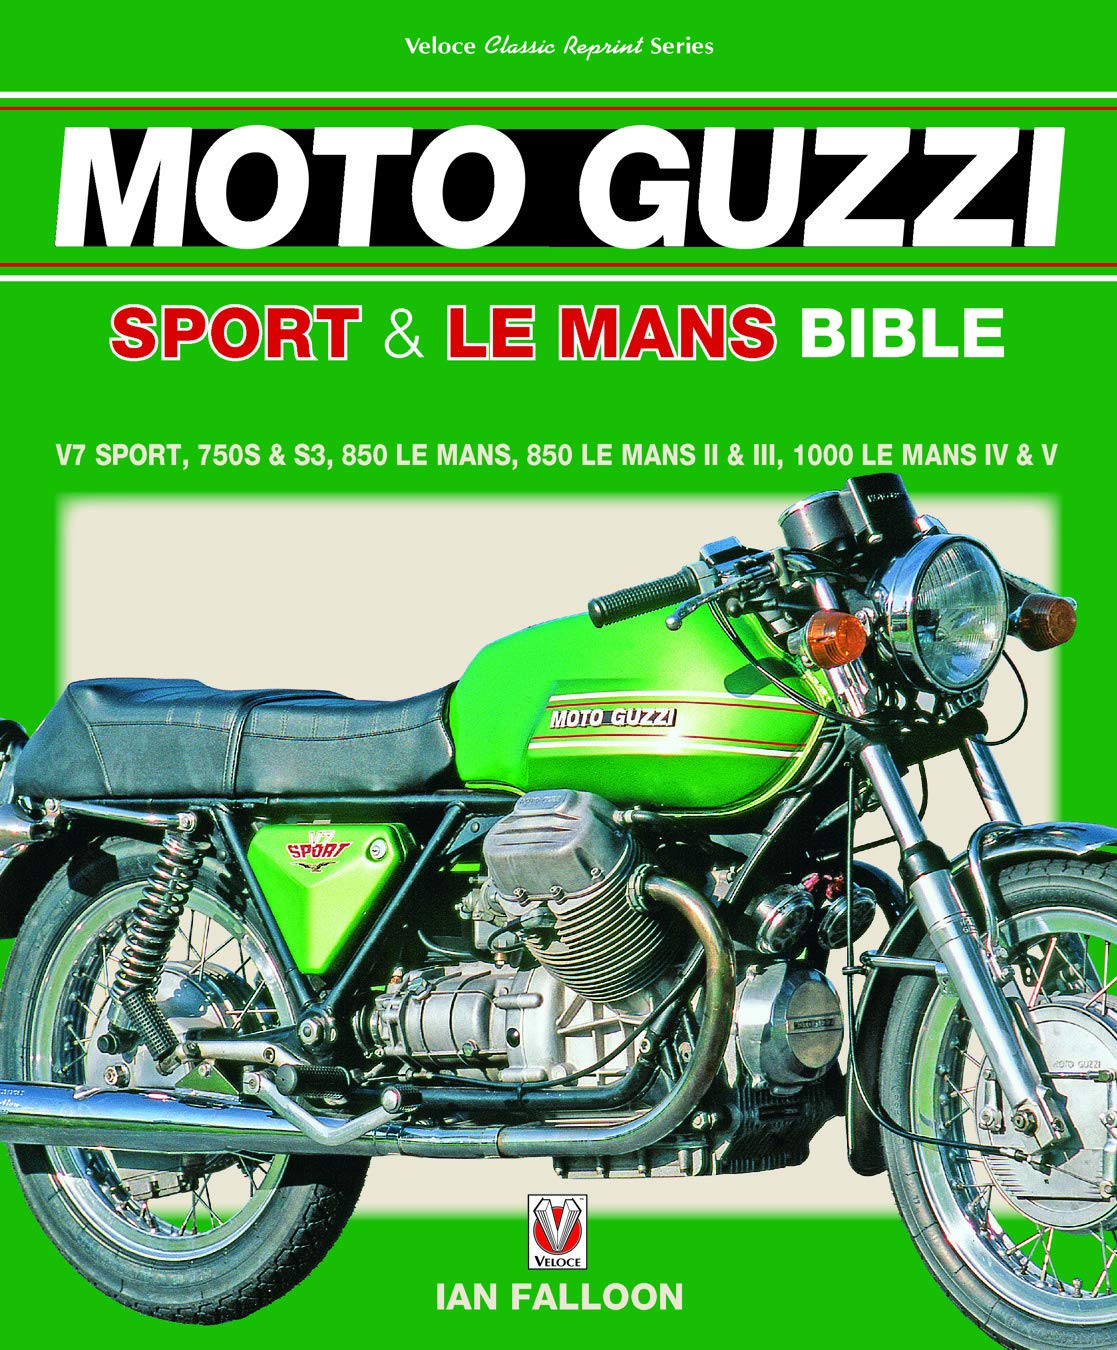 The Moto Guzzi Sport Le Mans Bible V7 Sport 750s S3 850 Lemans 850 Lemans Ii Iii 1000 Lemans Iv V Falloon Ian 9781787110953 Amazon Com Books